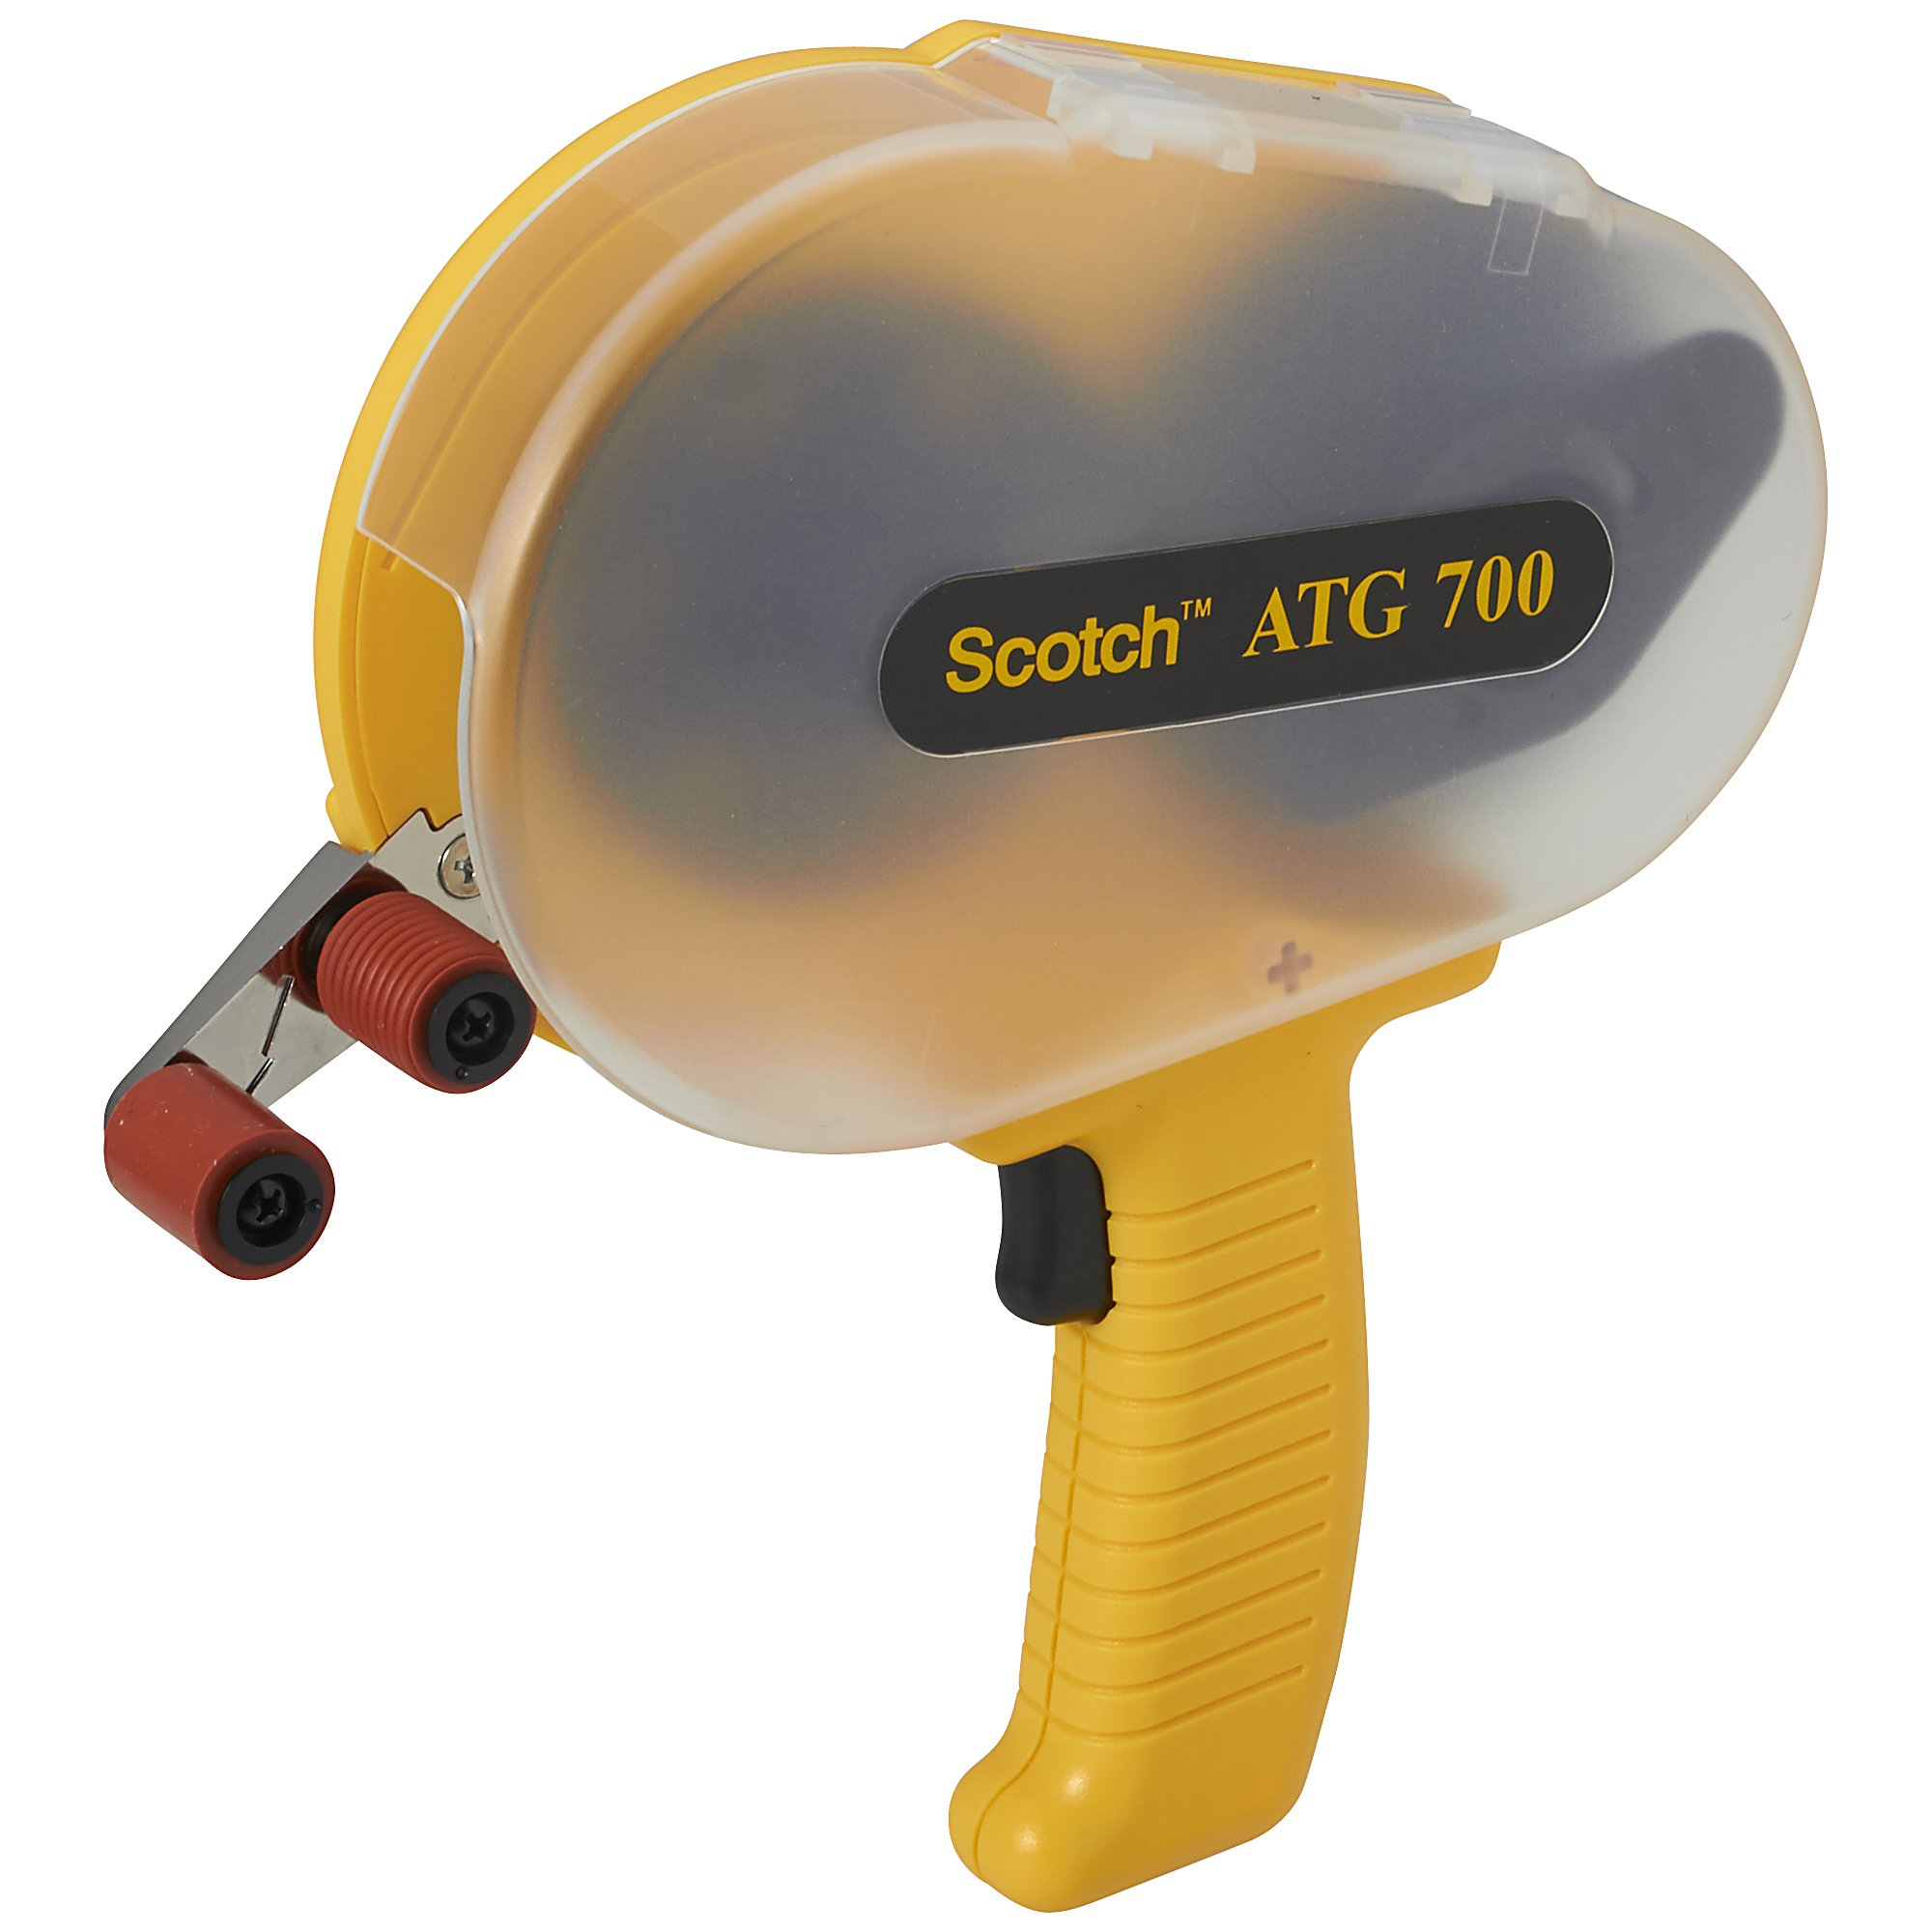 3M ATG 700 Adhesive Applicator, Dispenses 1/2 in and 3/4 in wide ATG rolls